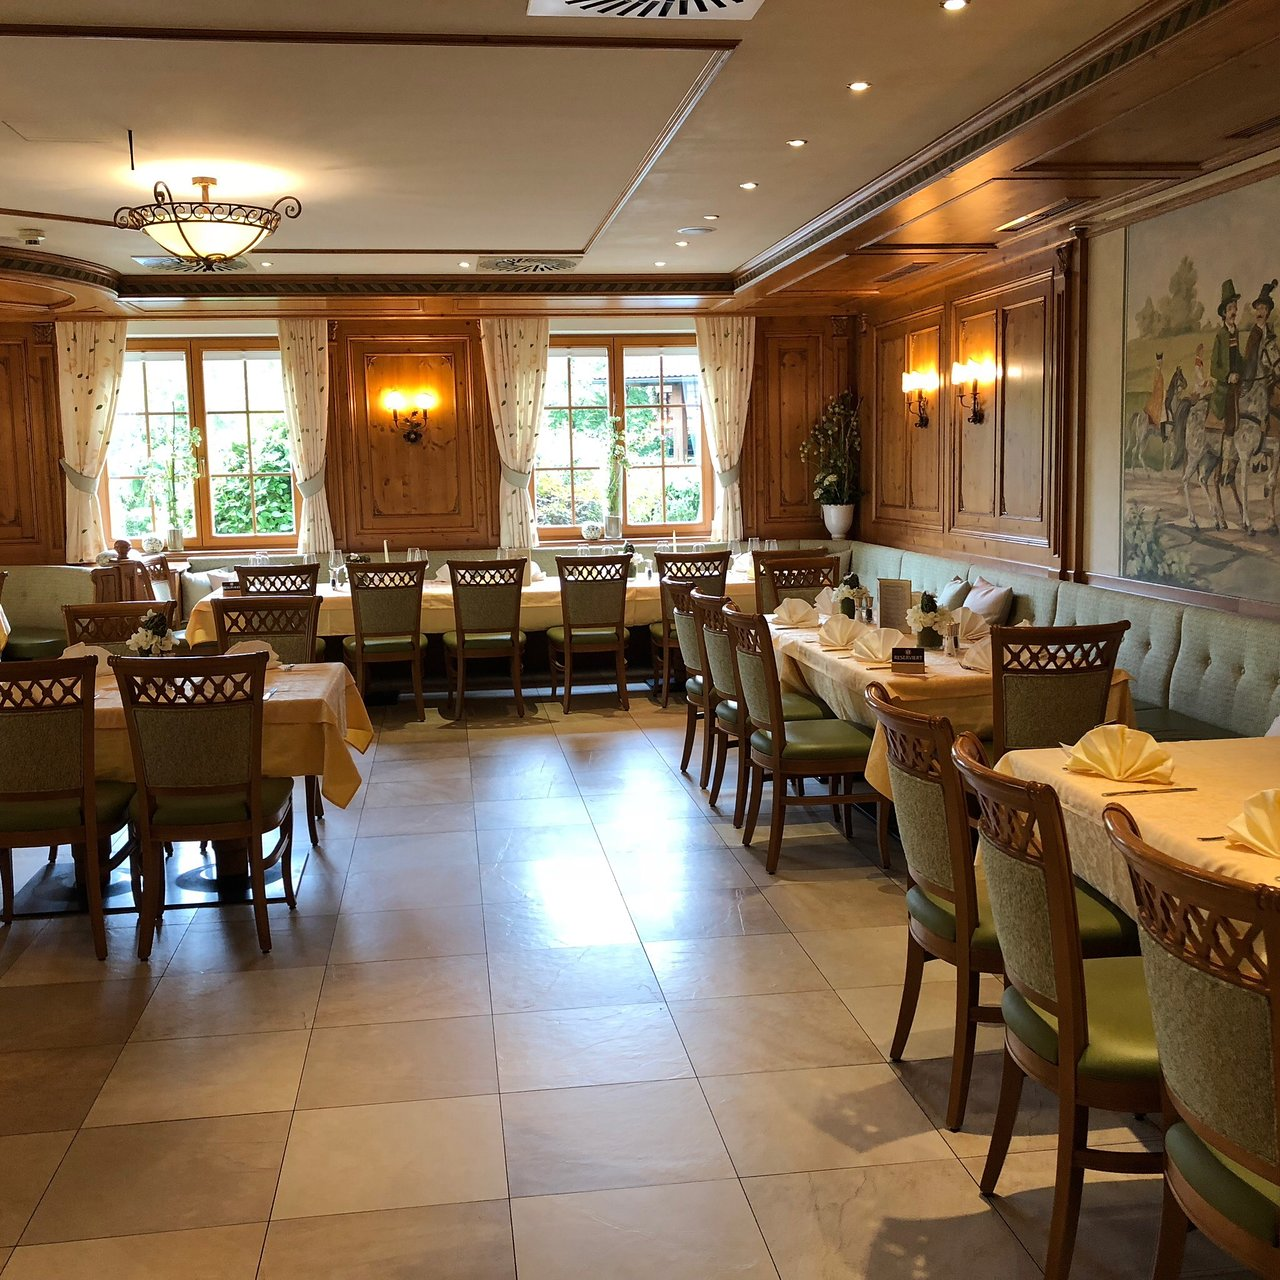 Bistro Esszimmer Am See Grunauer Hof Prices Hotel Reviews Salzburg Region Austria